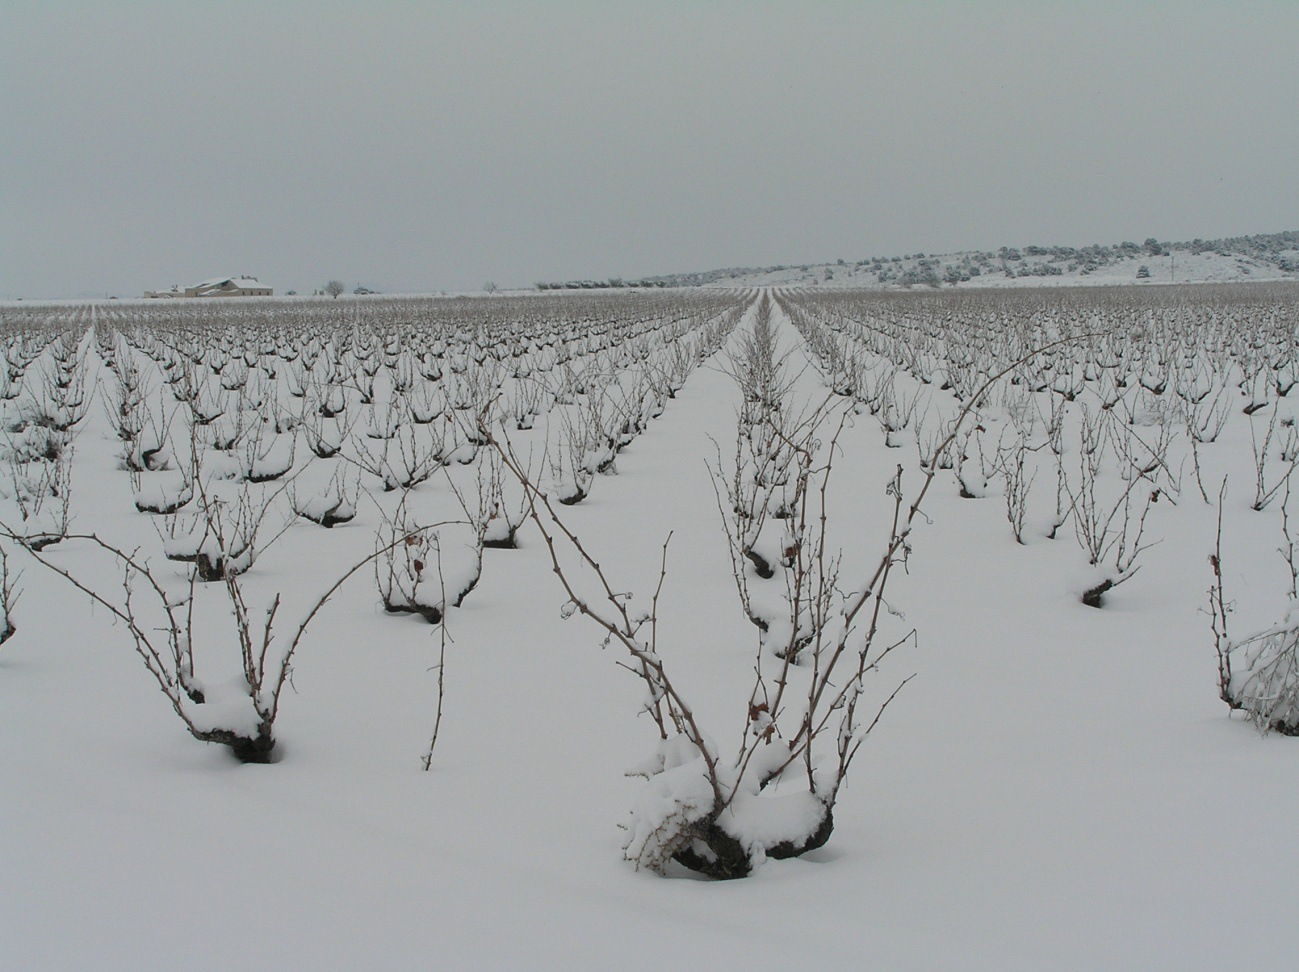 vinedos-nieve